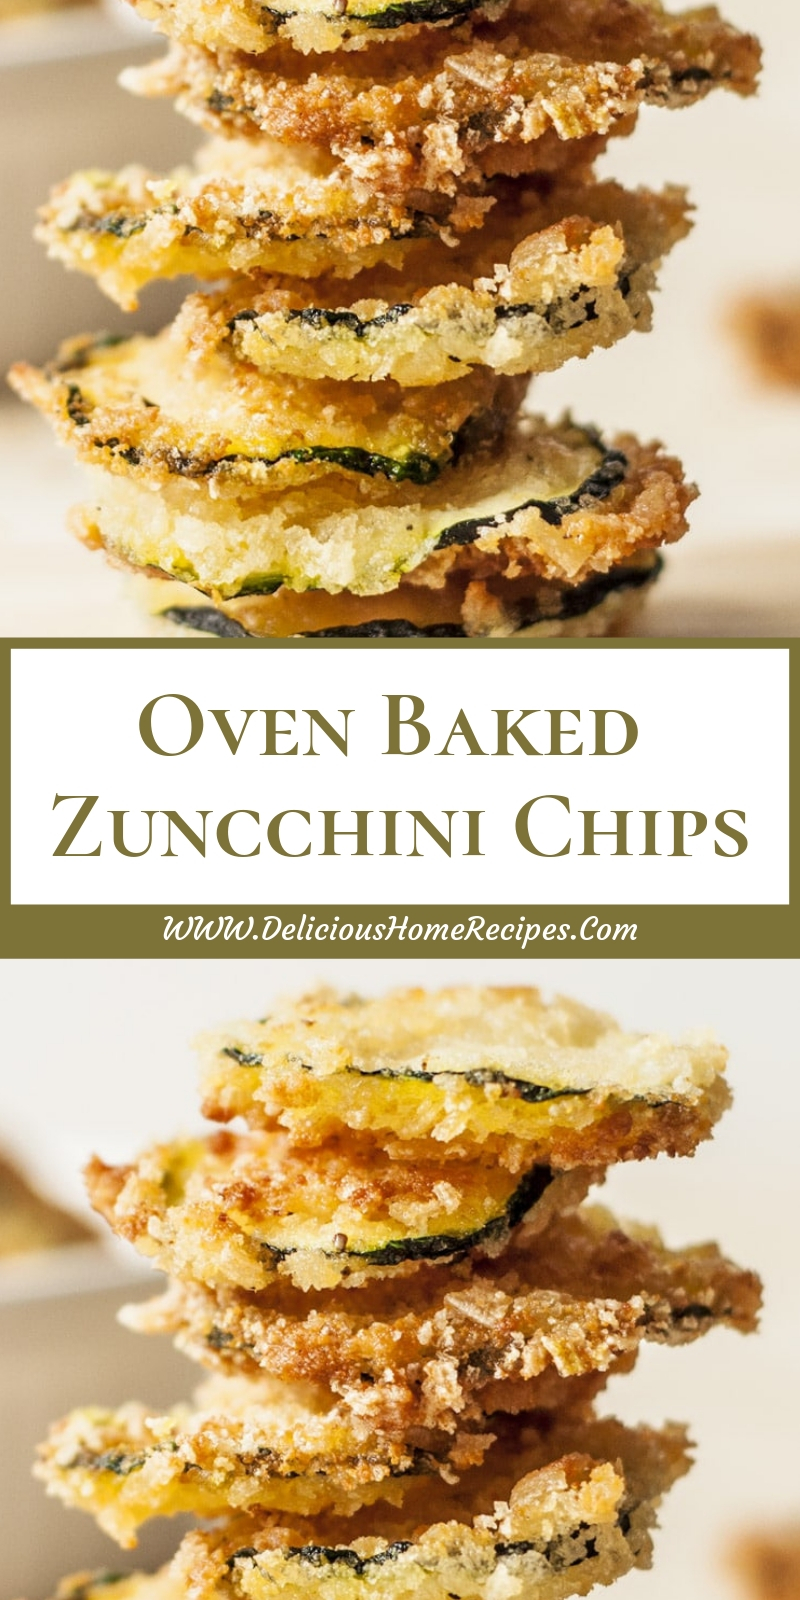 Oven Baked Zuncchini Chips